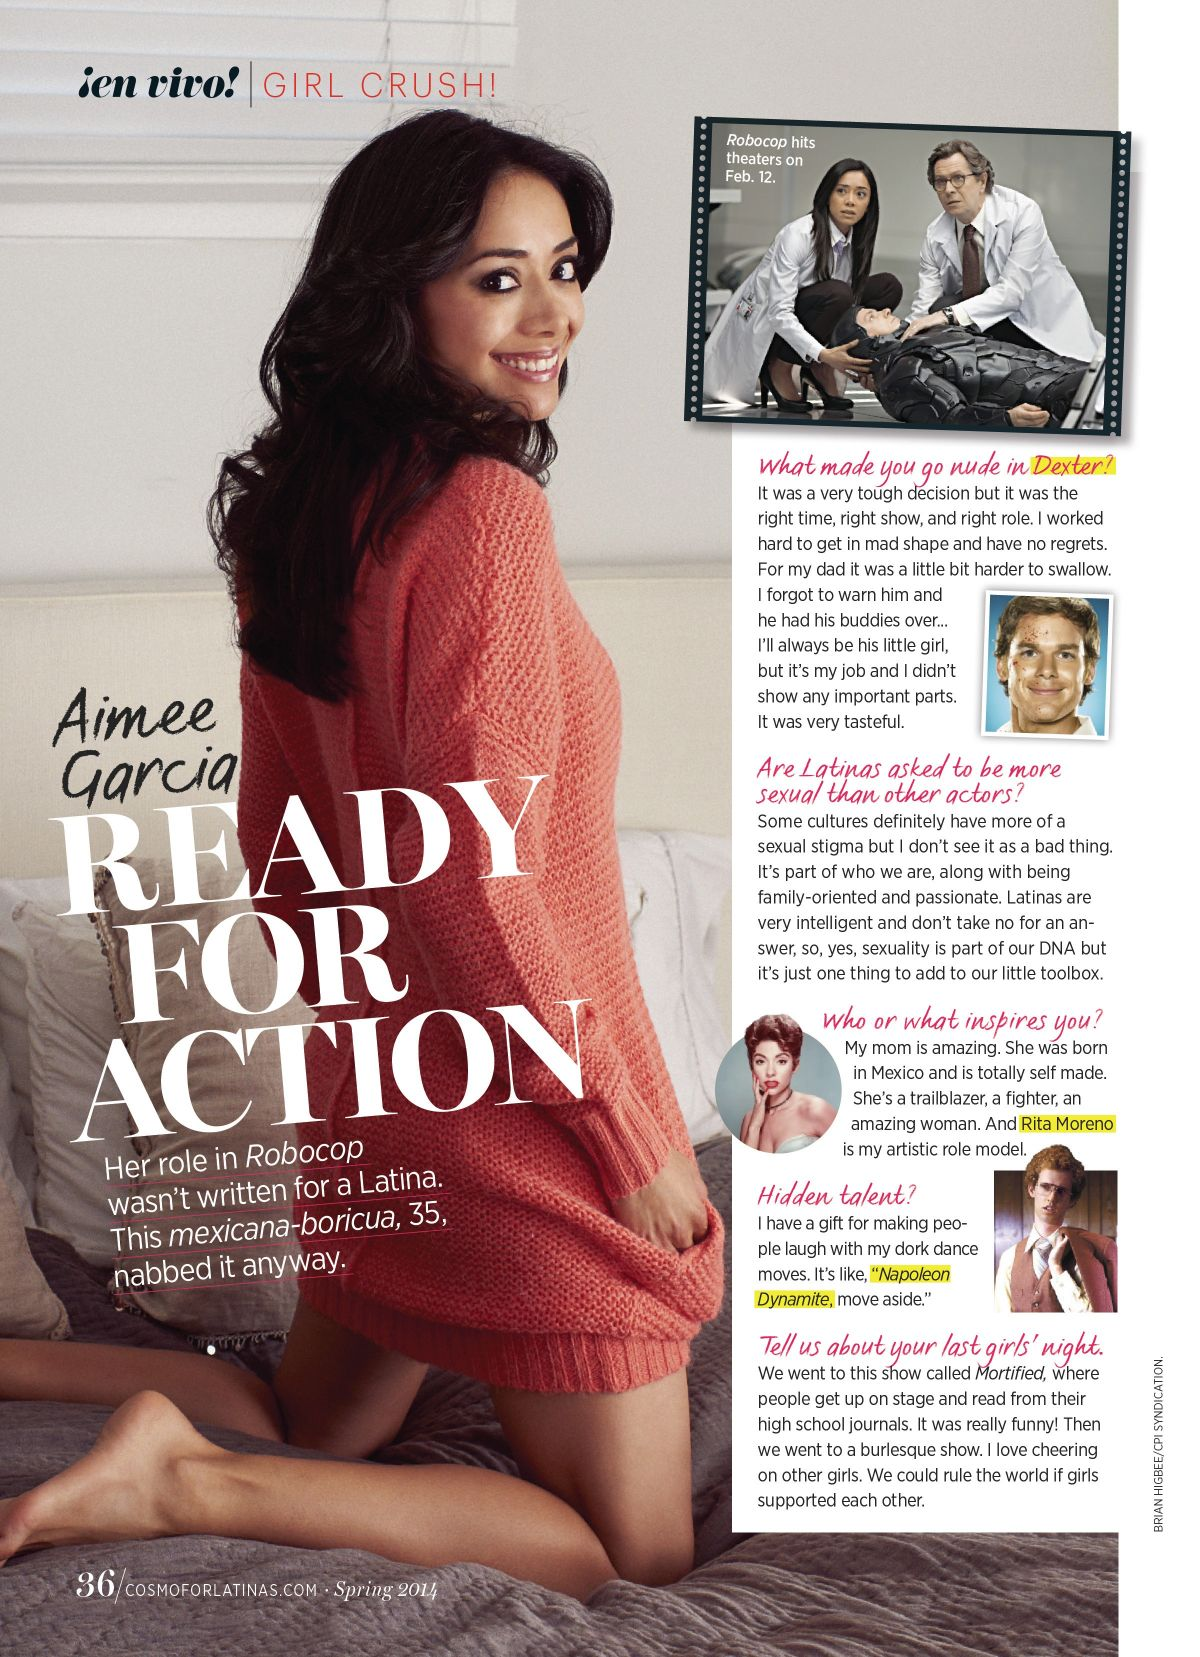 AIMEE GARCIA in Cosmopolitan for Latinas Magazine, Spring 2014 Issue